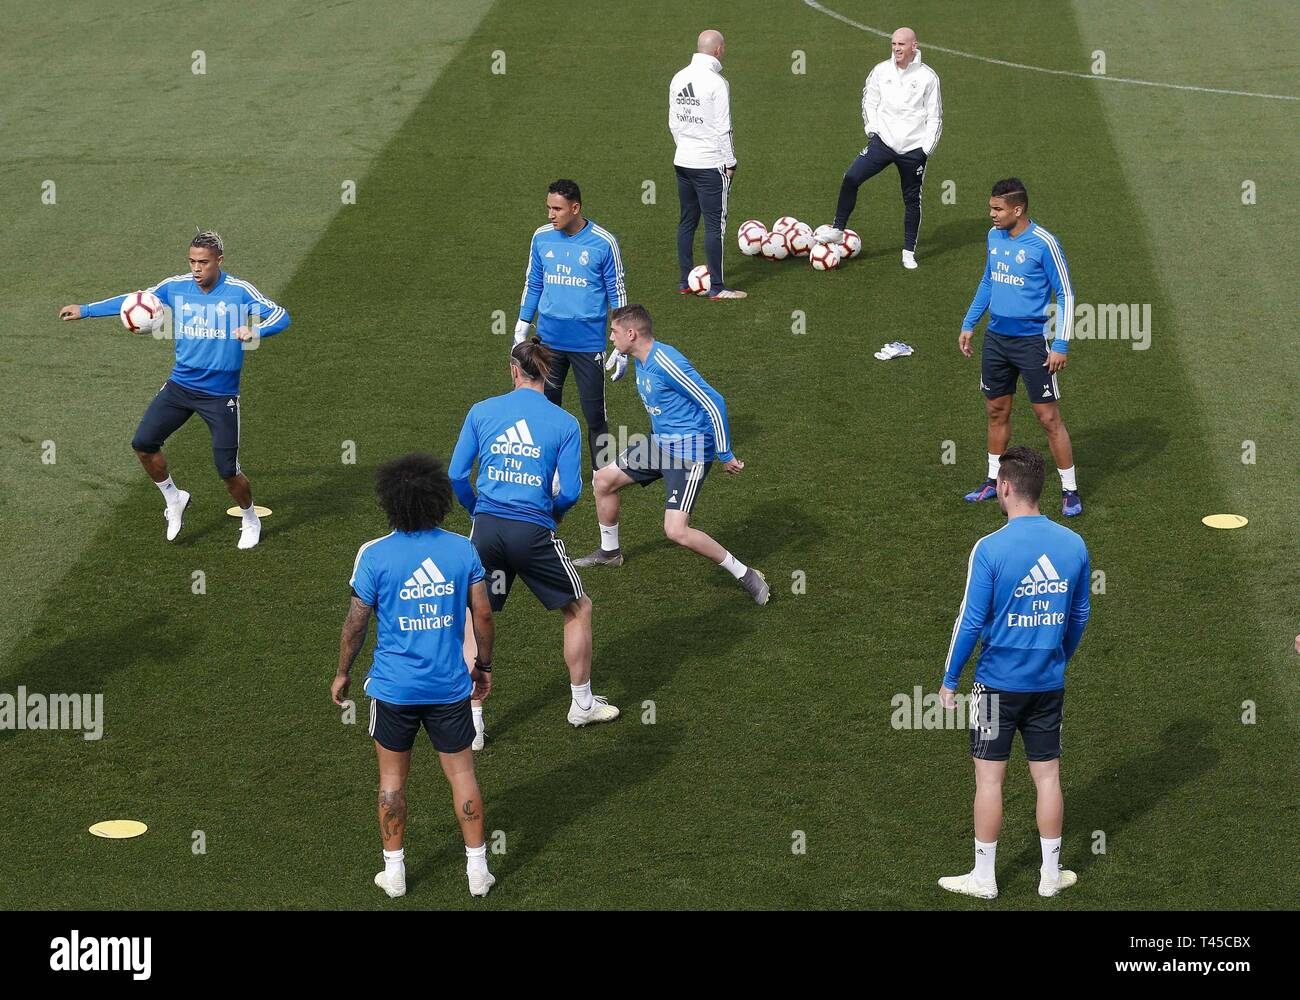 Madrid, Spain. 14th Apr, 2019. Real Madrid trains at Valdebebas sport complex, in Madrid, Spain, 14 April 2019. The team prepares its LaLiga game against Leganes on 15 April. Credit: Paco Campos/EFE/Alamy Live News Stock Photo